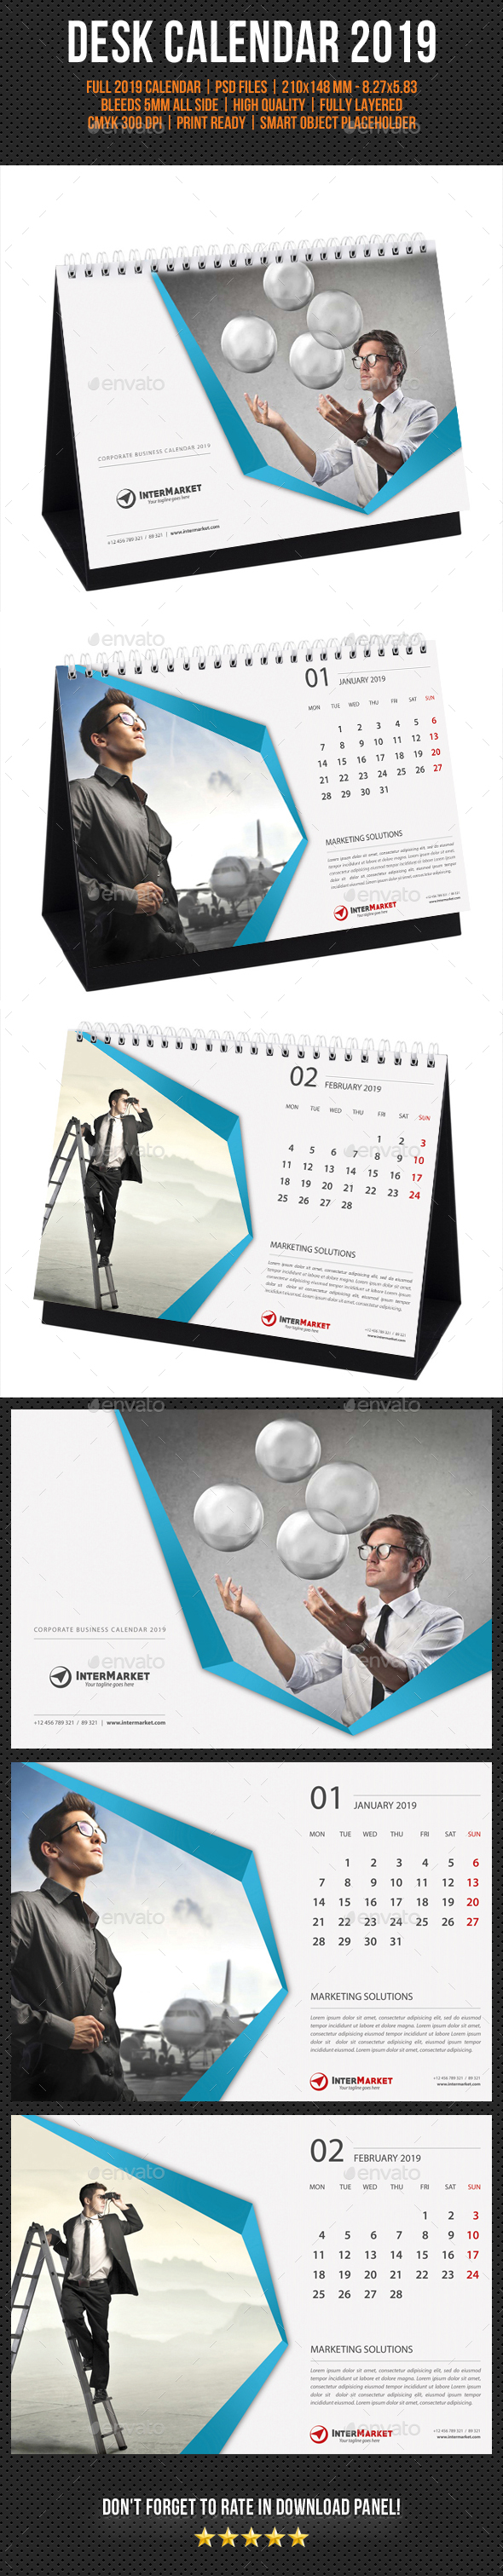 Corporate Desk Calendar 2019 V02 - Calendars Stationery